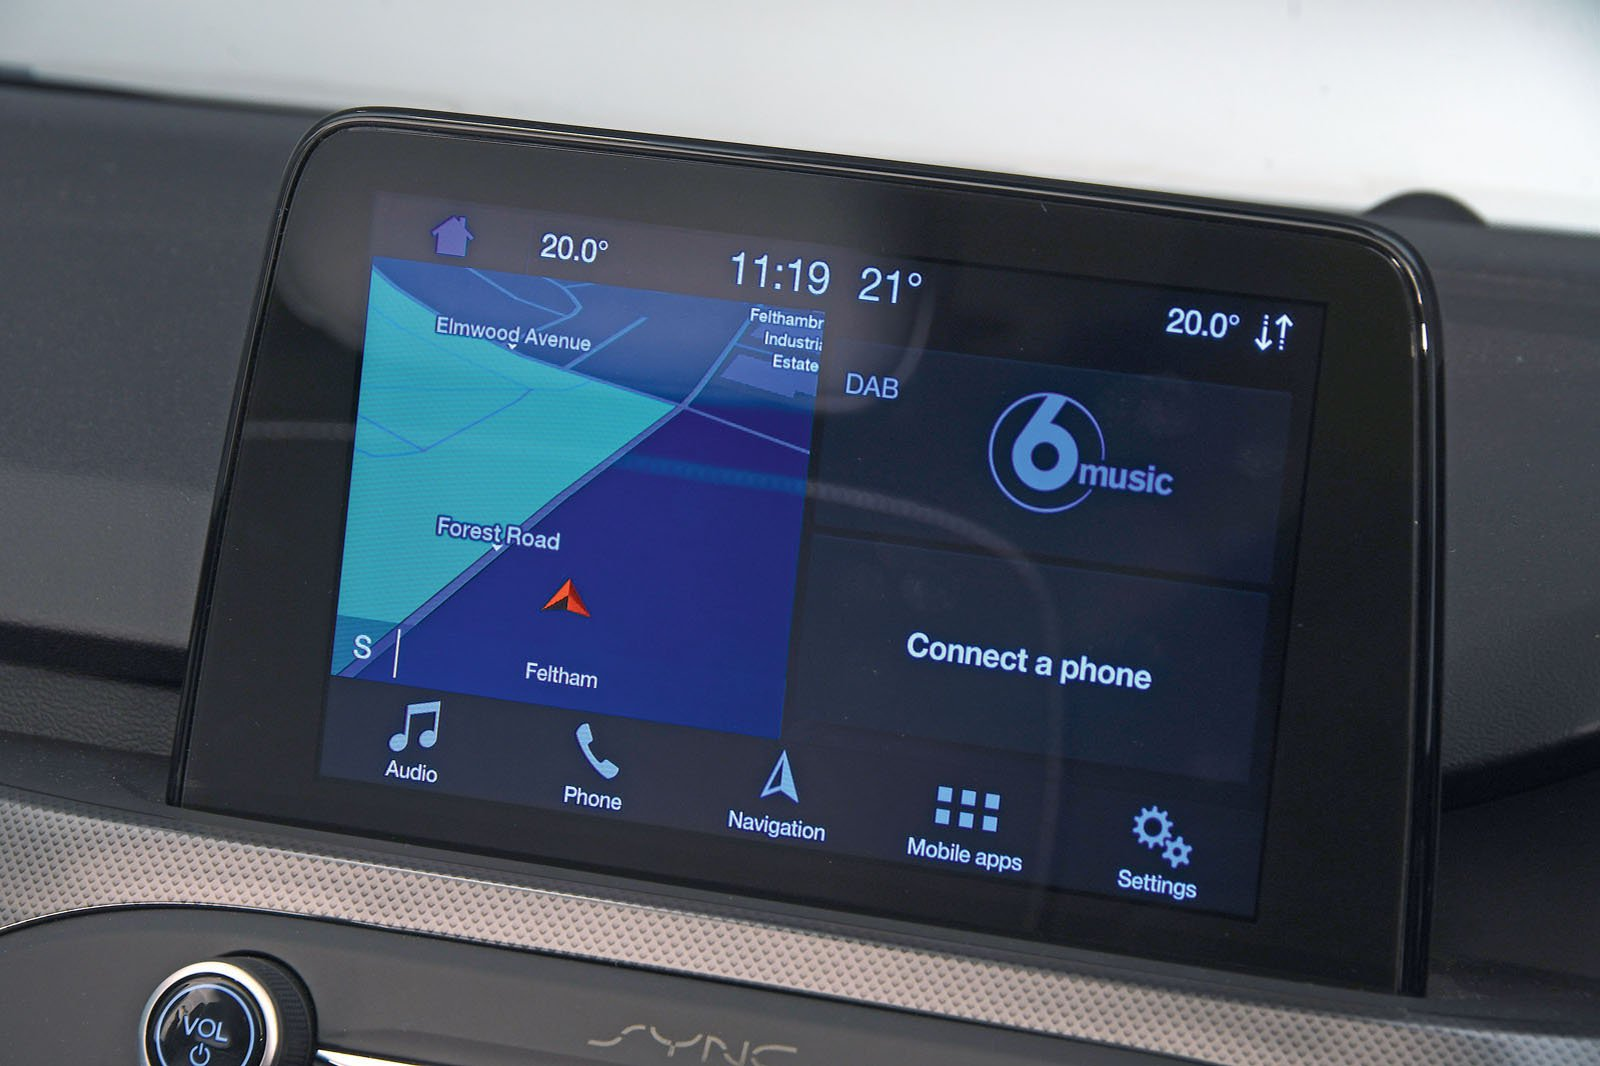 Ford Focus infotainment